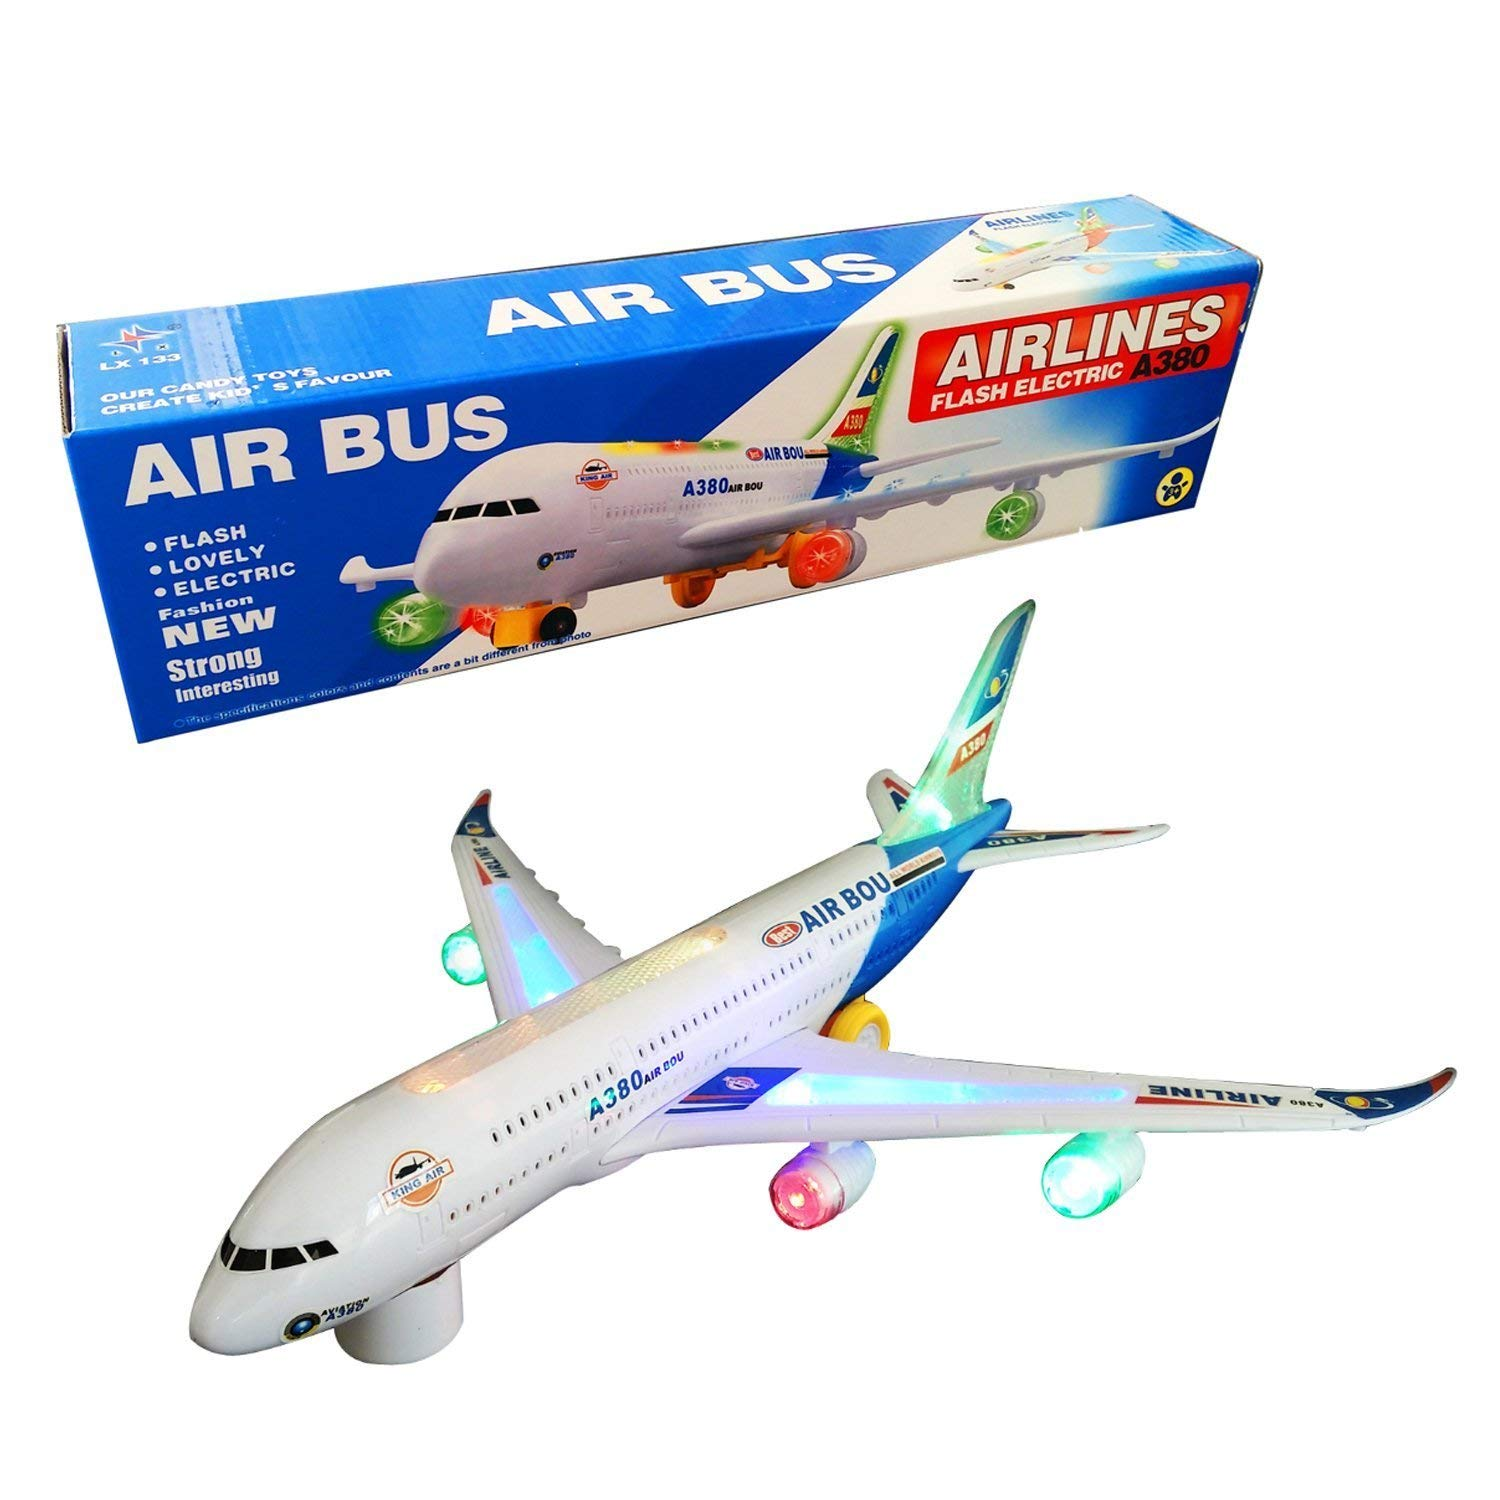 Battery Operated Operated Operated Electric Airbus Toy with Flashing Lights and Real Jet Engine Sound Bump and Go Action A380 Airplane  Changes Direction On Contact  Best Toys for Kids Age 3 and Up (colors May Vary) 2444a1